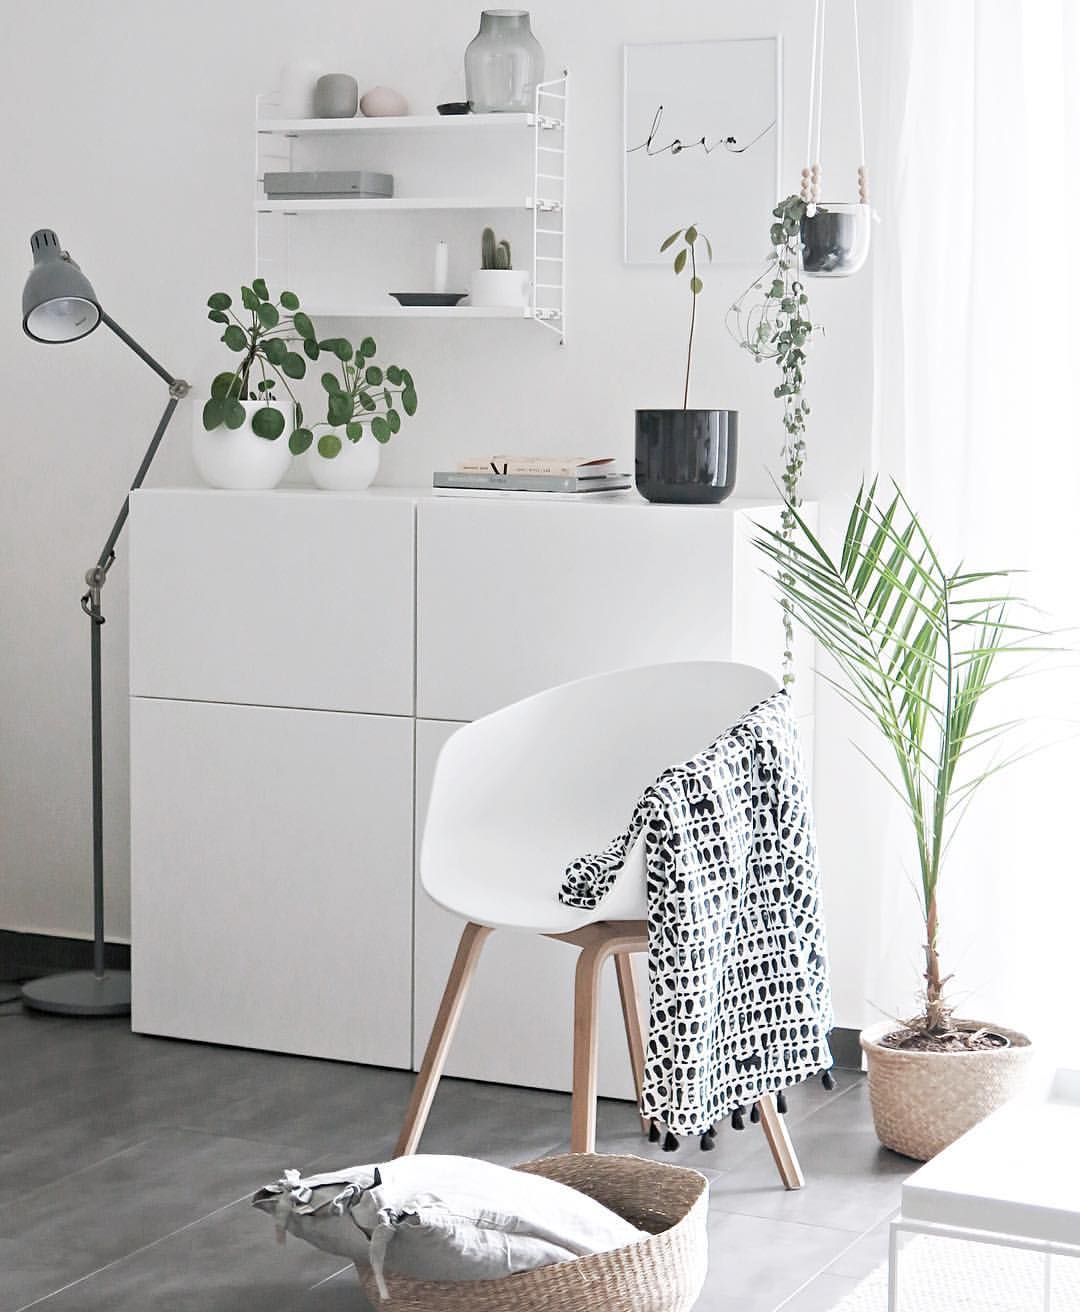 white interior and green plants | Inspired Interiors | Pinterest ...